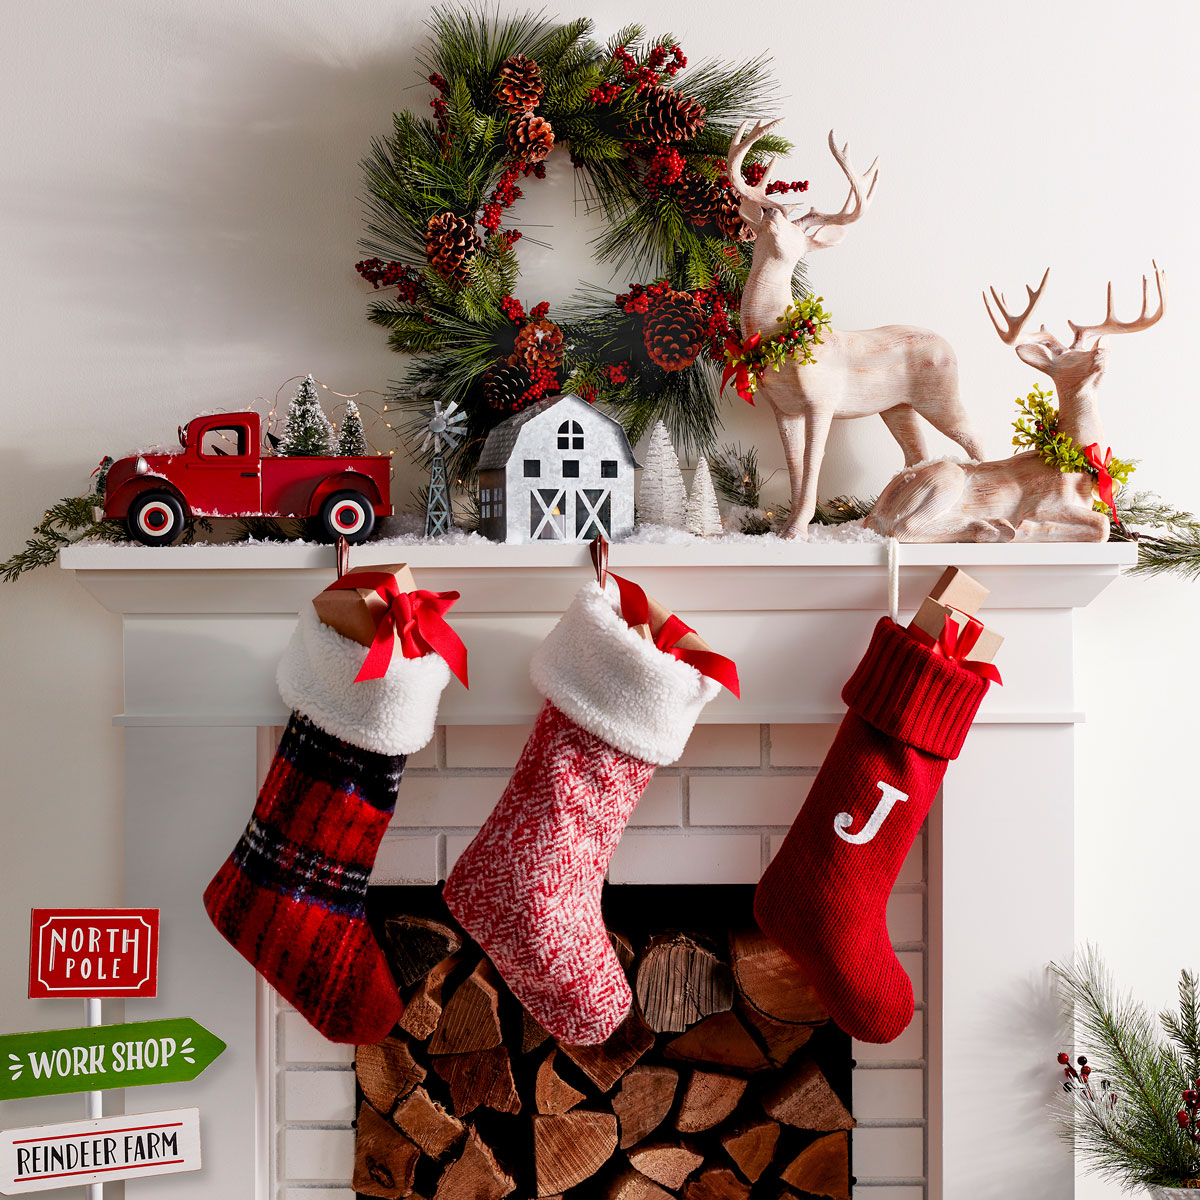 Image of Stockings hung on a fireplace